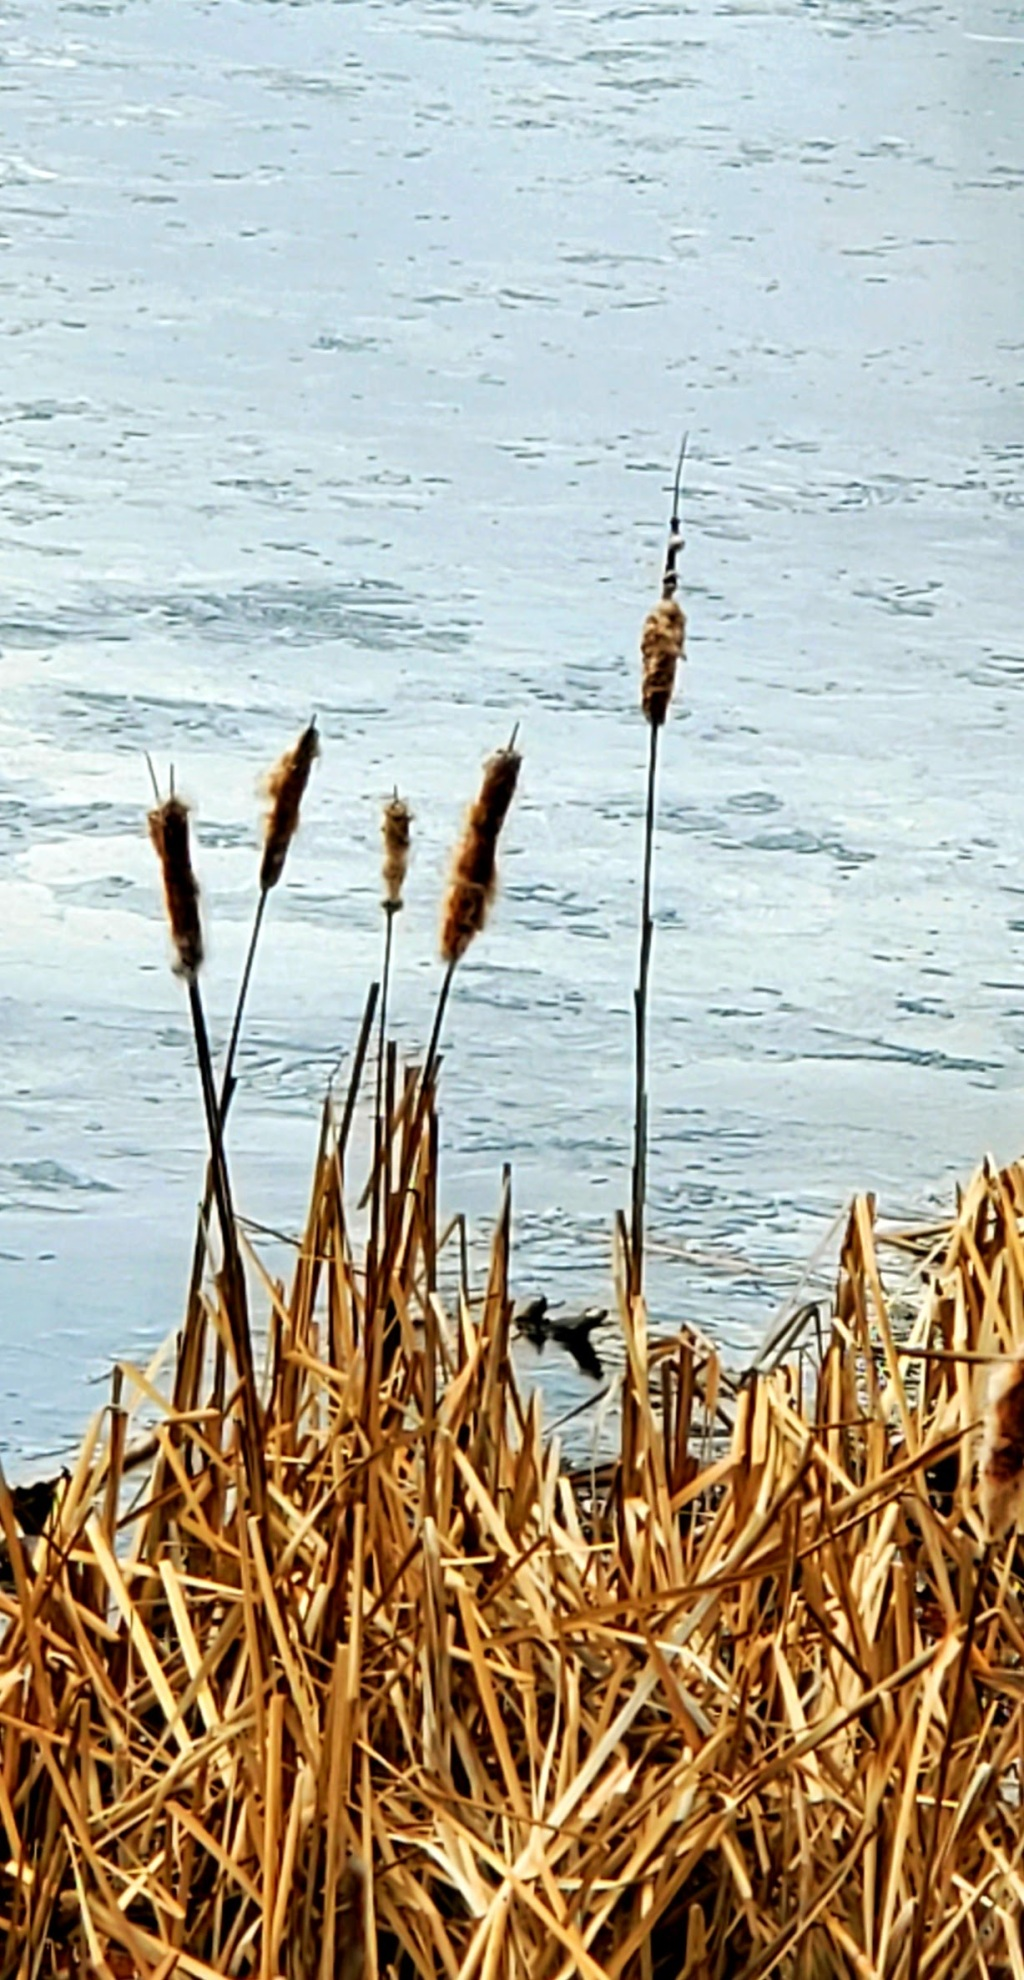 cattails by the shore of the quarry